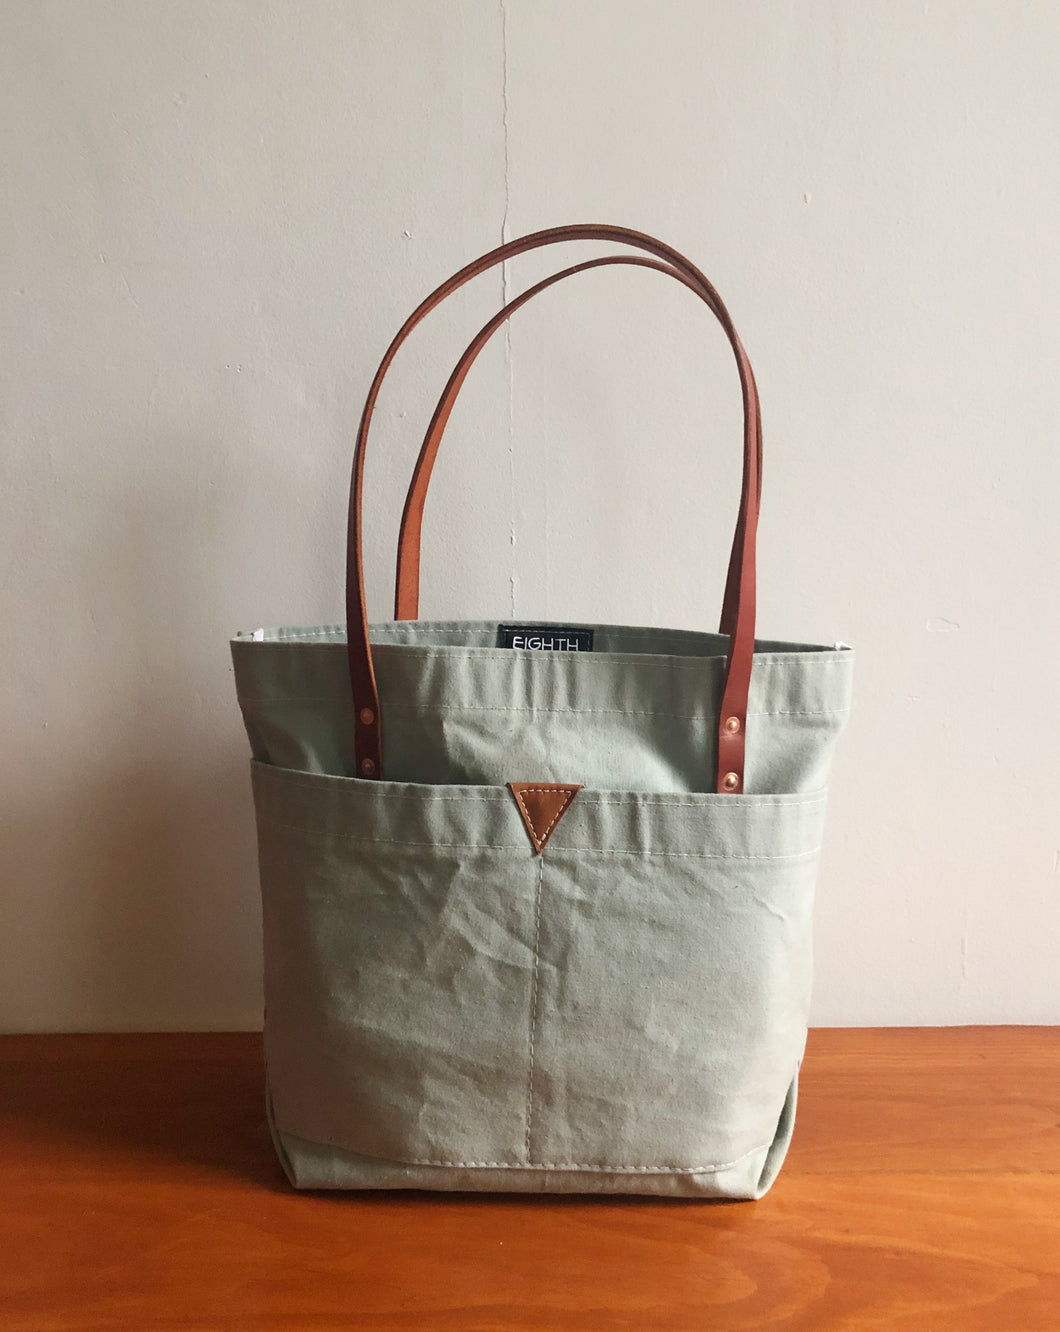 MAINE TOTE SMALL - SEA MIST